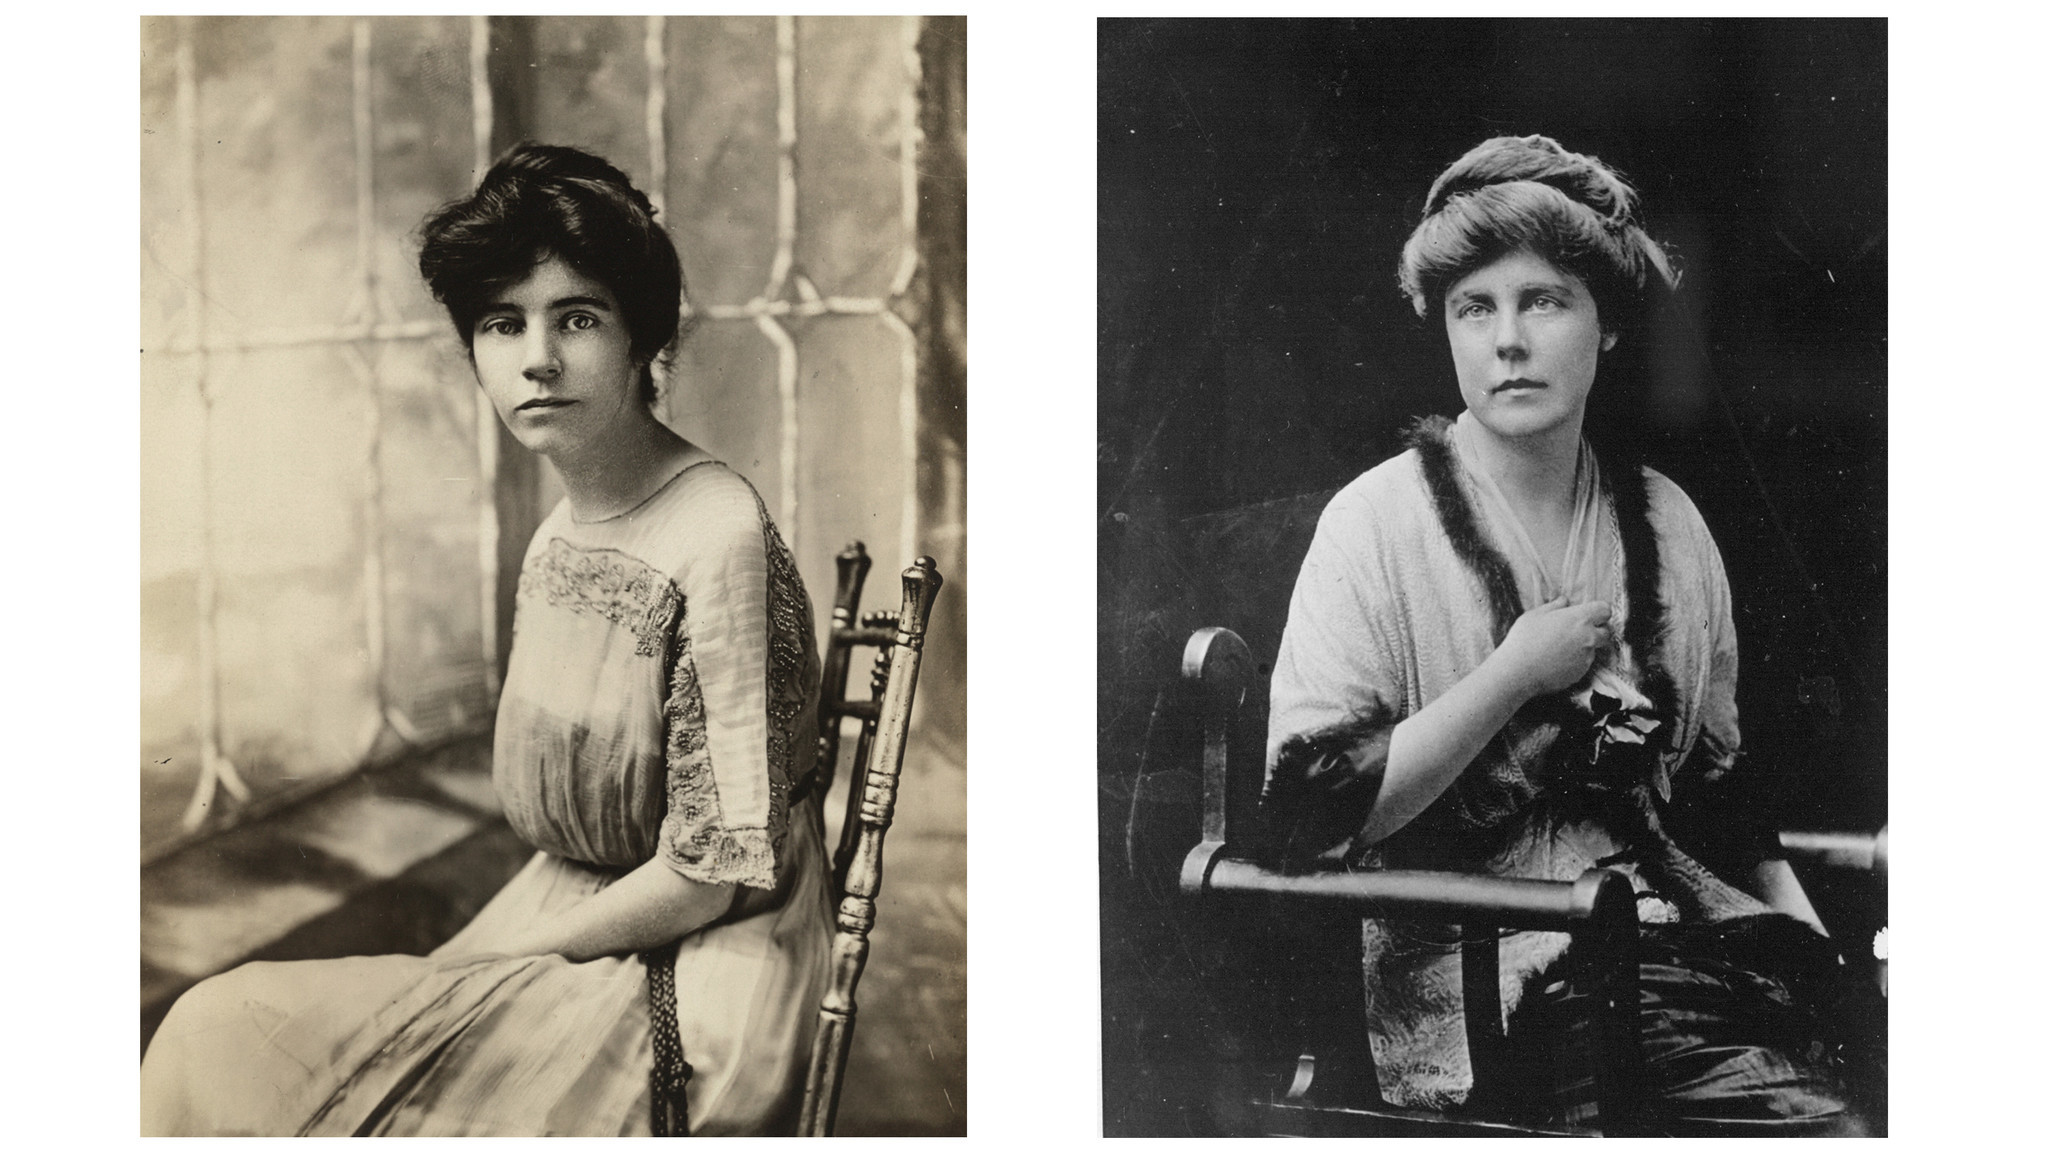 Alice Paul, left, national chairman of the Congressional Union for Woman Suffrage, and Lucy Burns, vice chairman of the organization in 1913